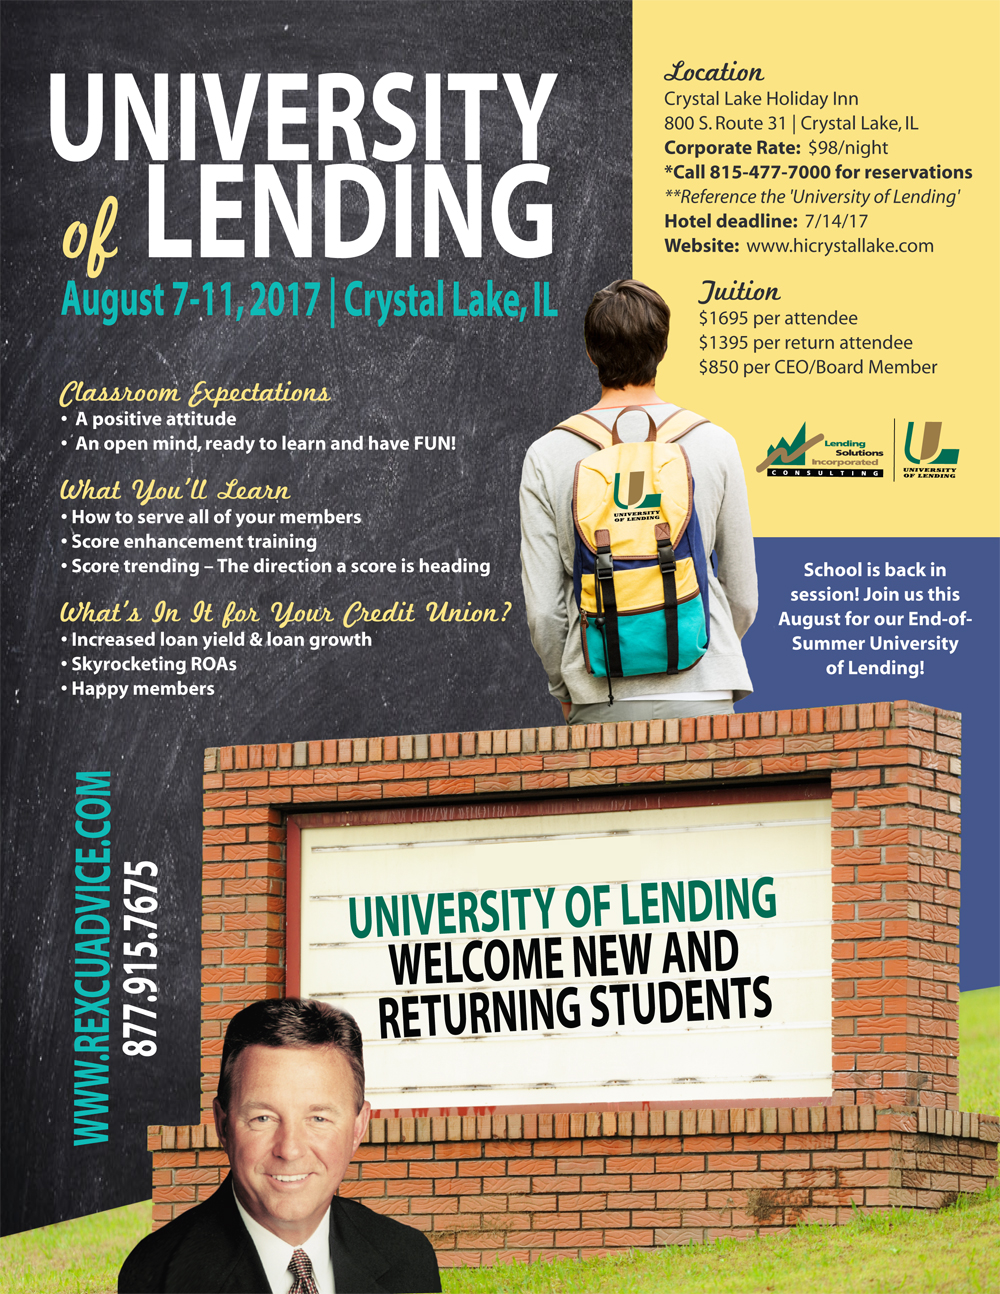 5-Day University of Lending - Crystal Lake, IL - August 7-11, 2017